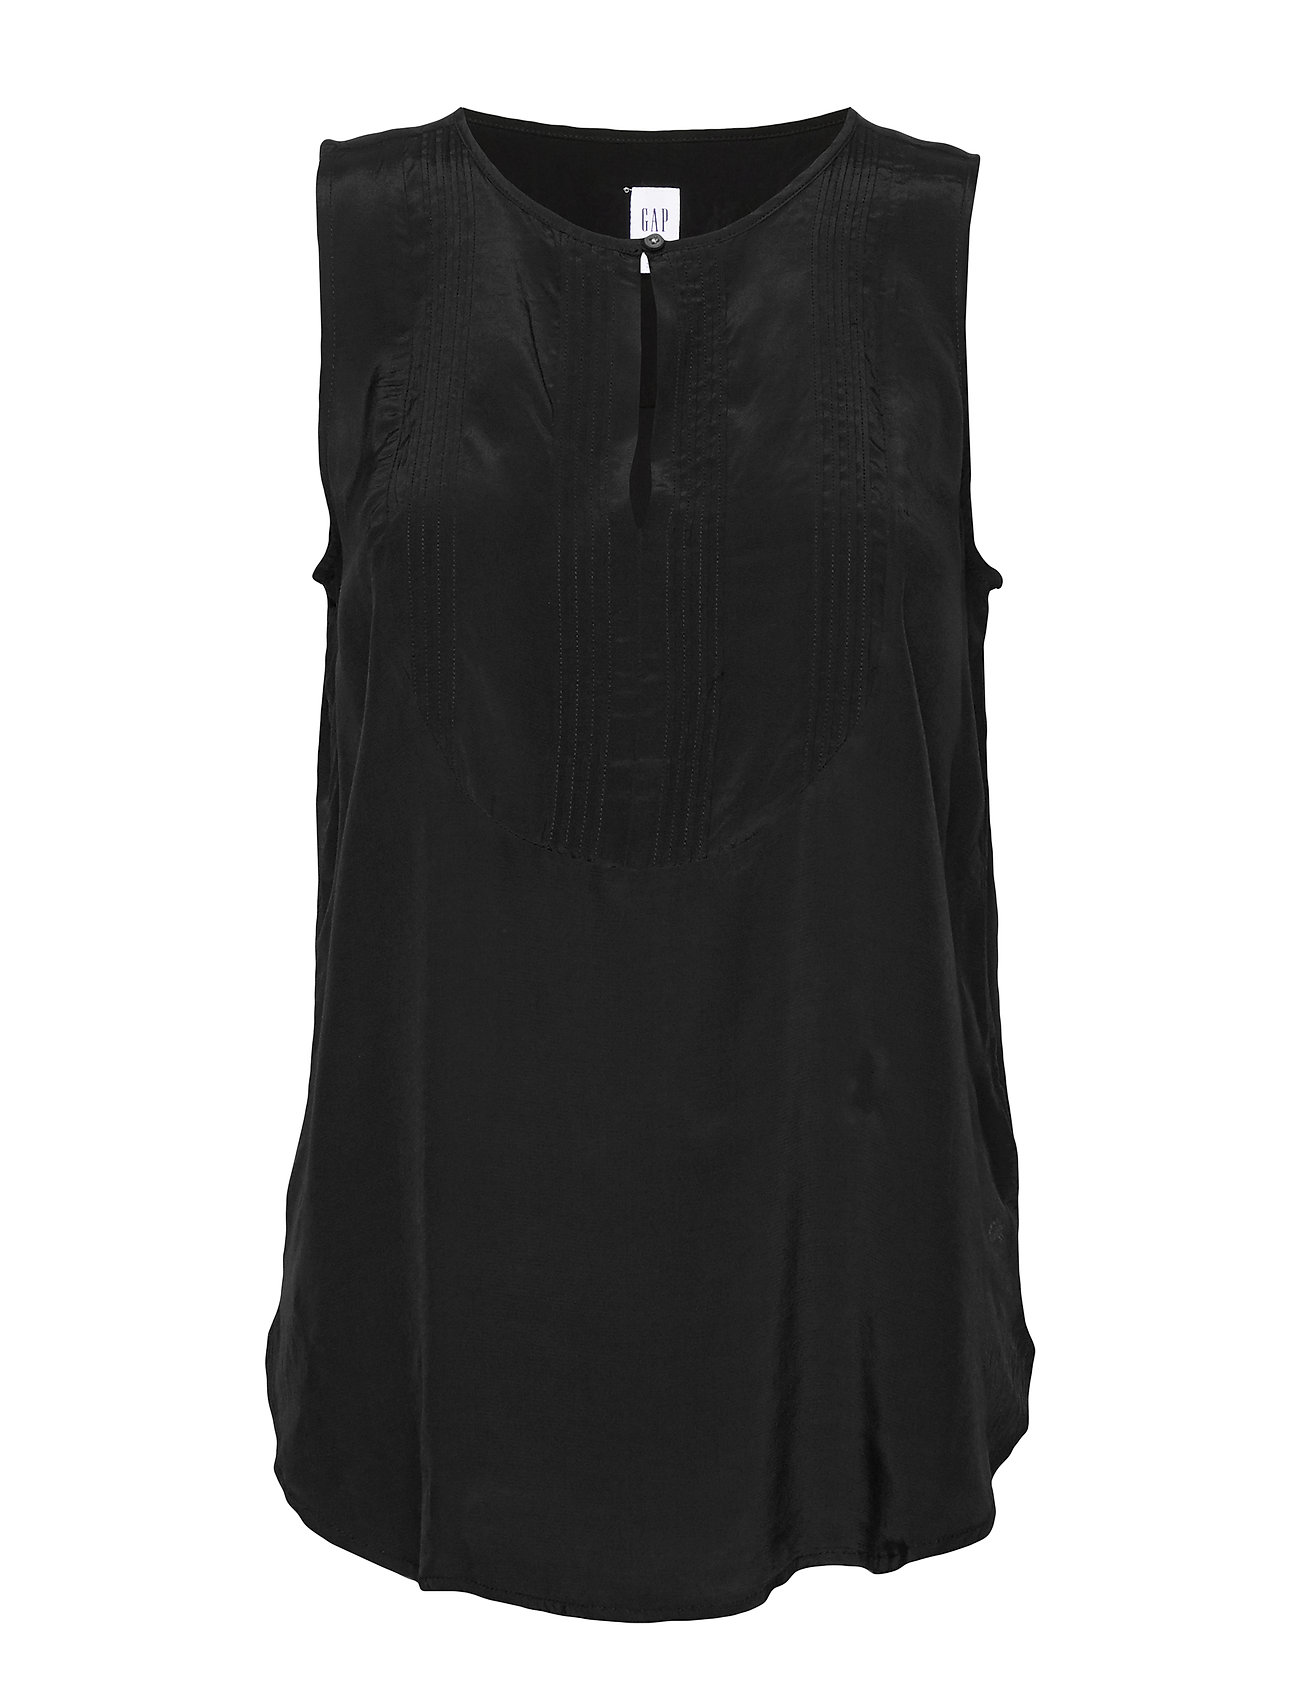 Image of Sleeveless Pintuck Bib-Front Top Bluse Ærmeløs Sort GAP (3277931443)